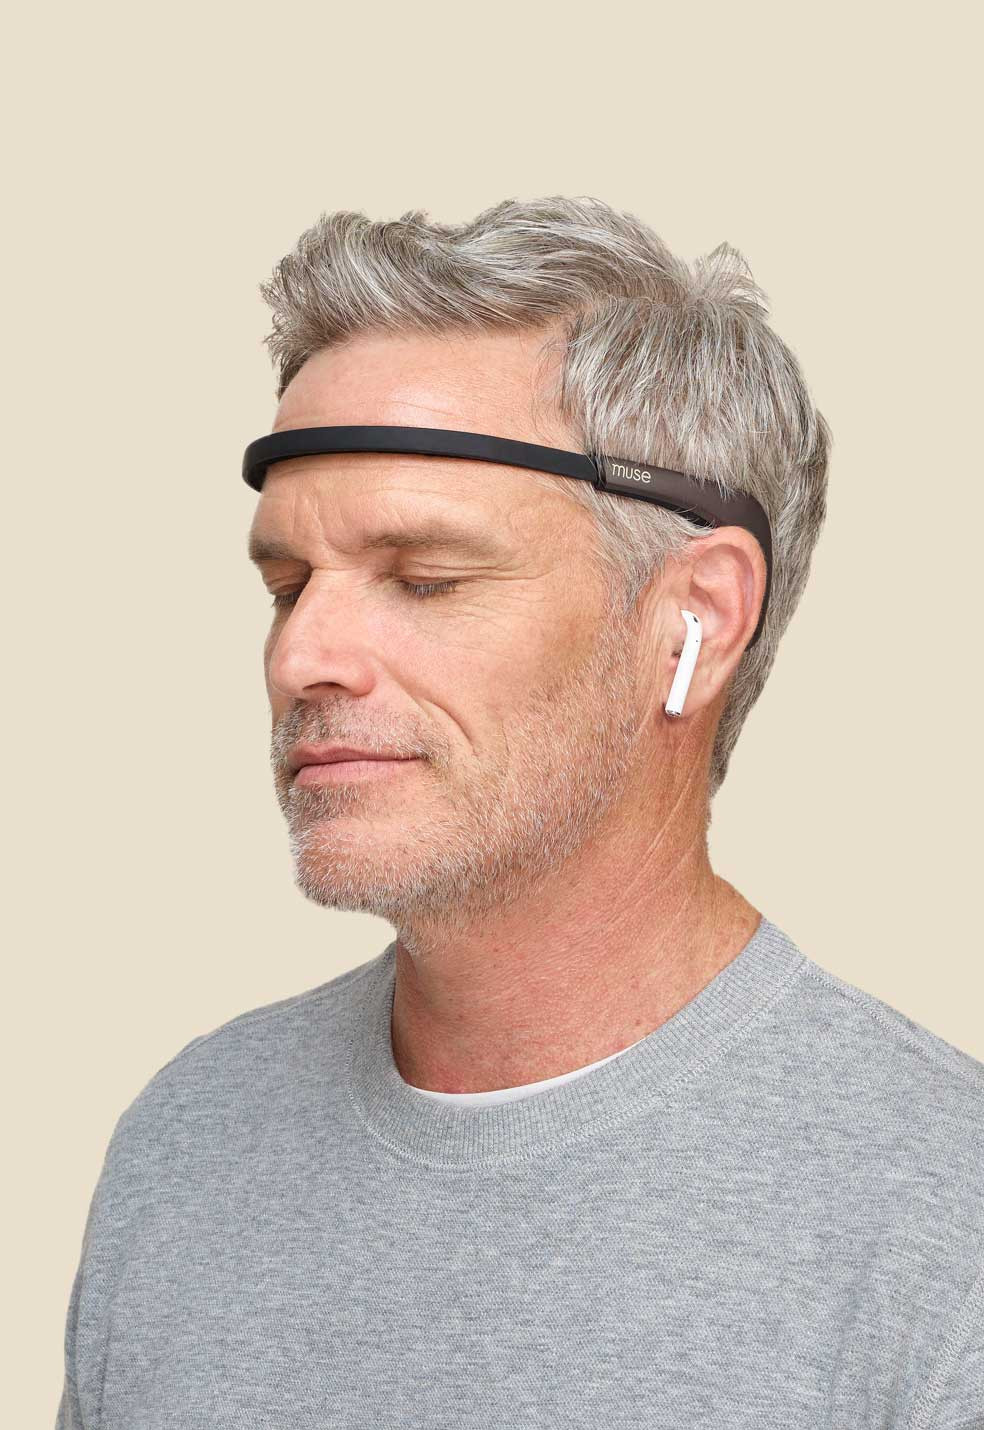 Muse Electroencephalogram - EEG. Used for biofeedback. In addition includes Heart Rate Monitor, Pulse Oximeter and Acceleromether together with a Photoplethysmogram for breathing analysis.